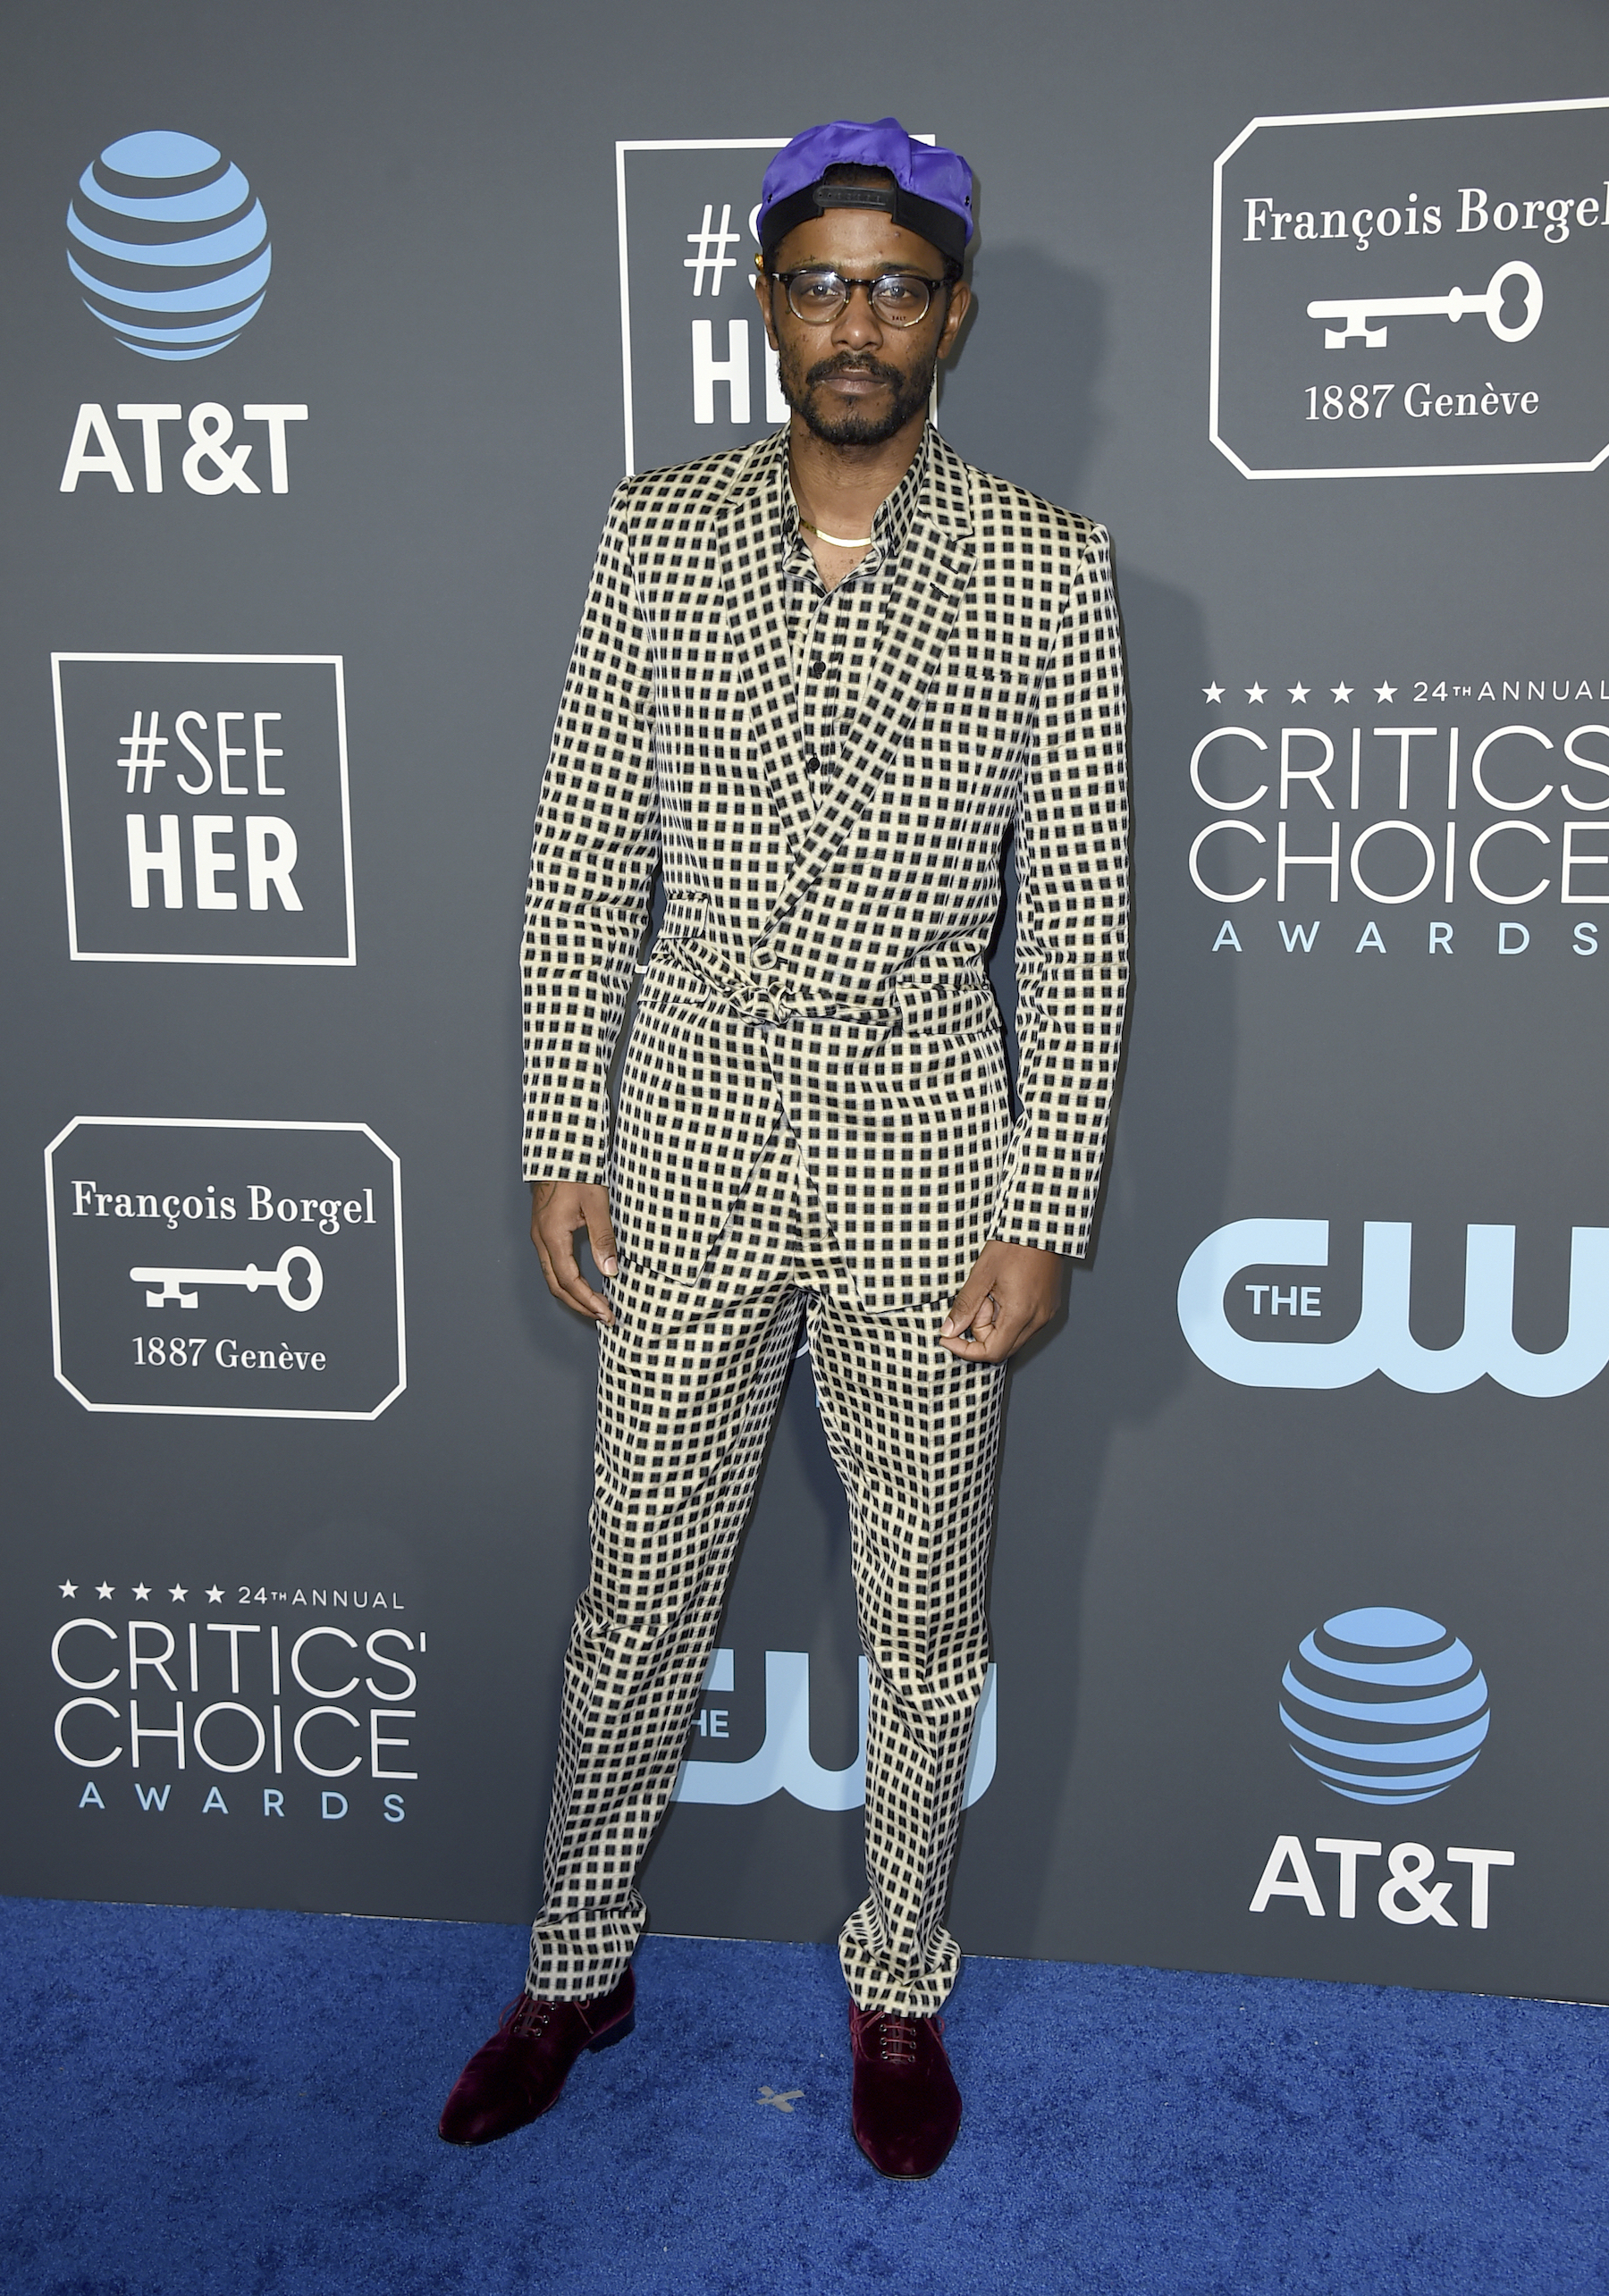 <div class='meta'><div class='origin-logo' data-origin='AP'></div><span class='caption-text' data-credit='Jordan Strauss/Invision/AP'>Lakeith Stanfield arrives at the 24th annual Critics' Choice Awards on Sunday, Jan. 13, 2019, at the Barker Hangar in Santa Monica, Calif.</span></div>